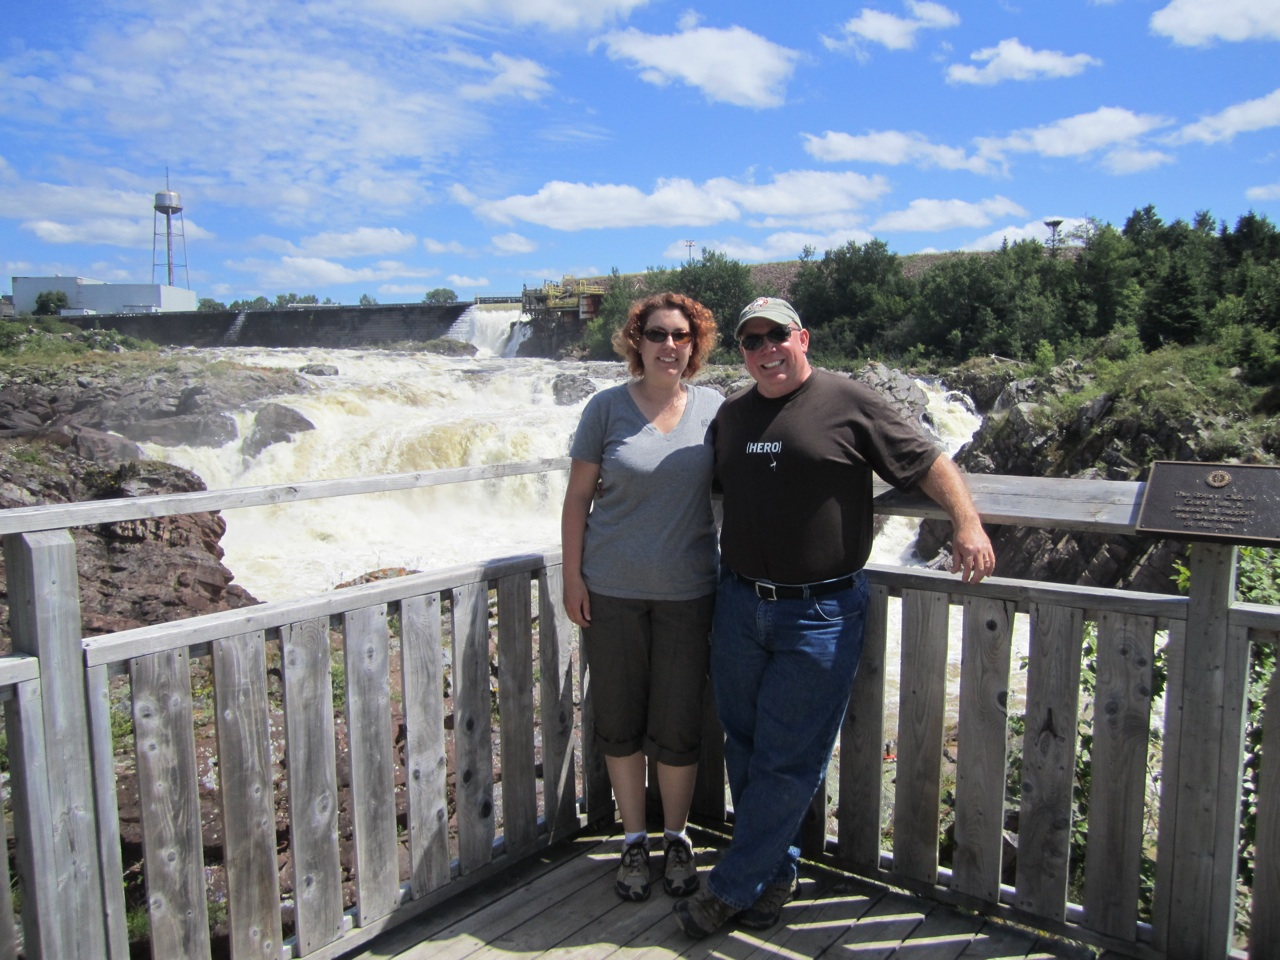 David And Brenda In Grand Falls-Windsor At The Salmonid Interpretation Center